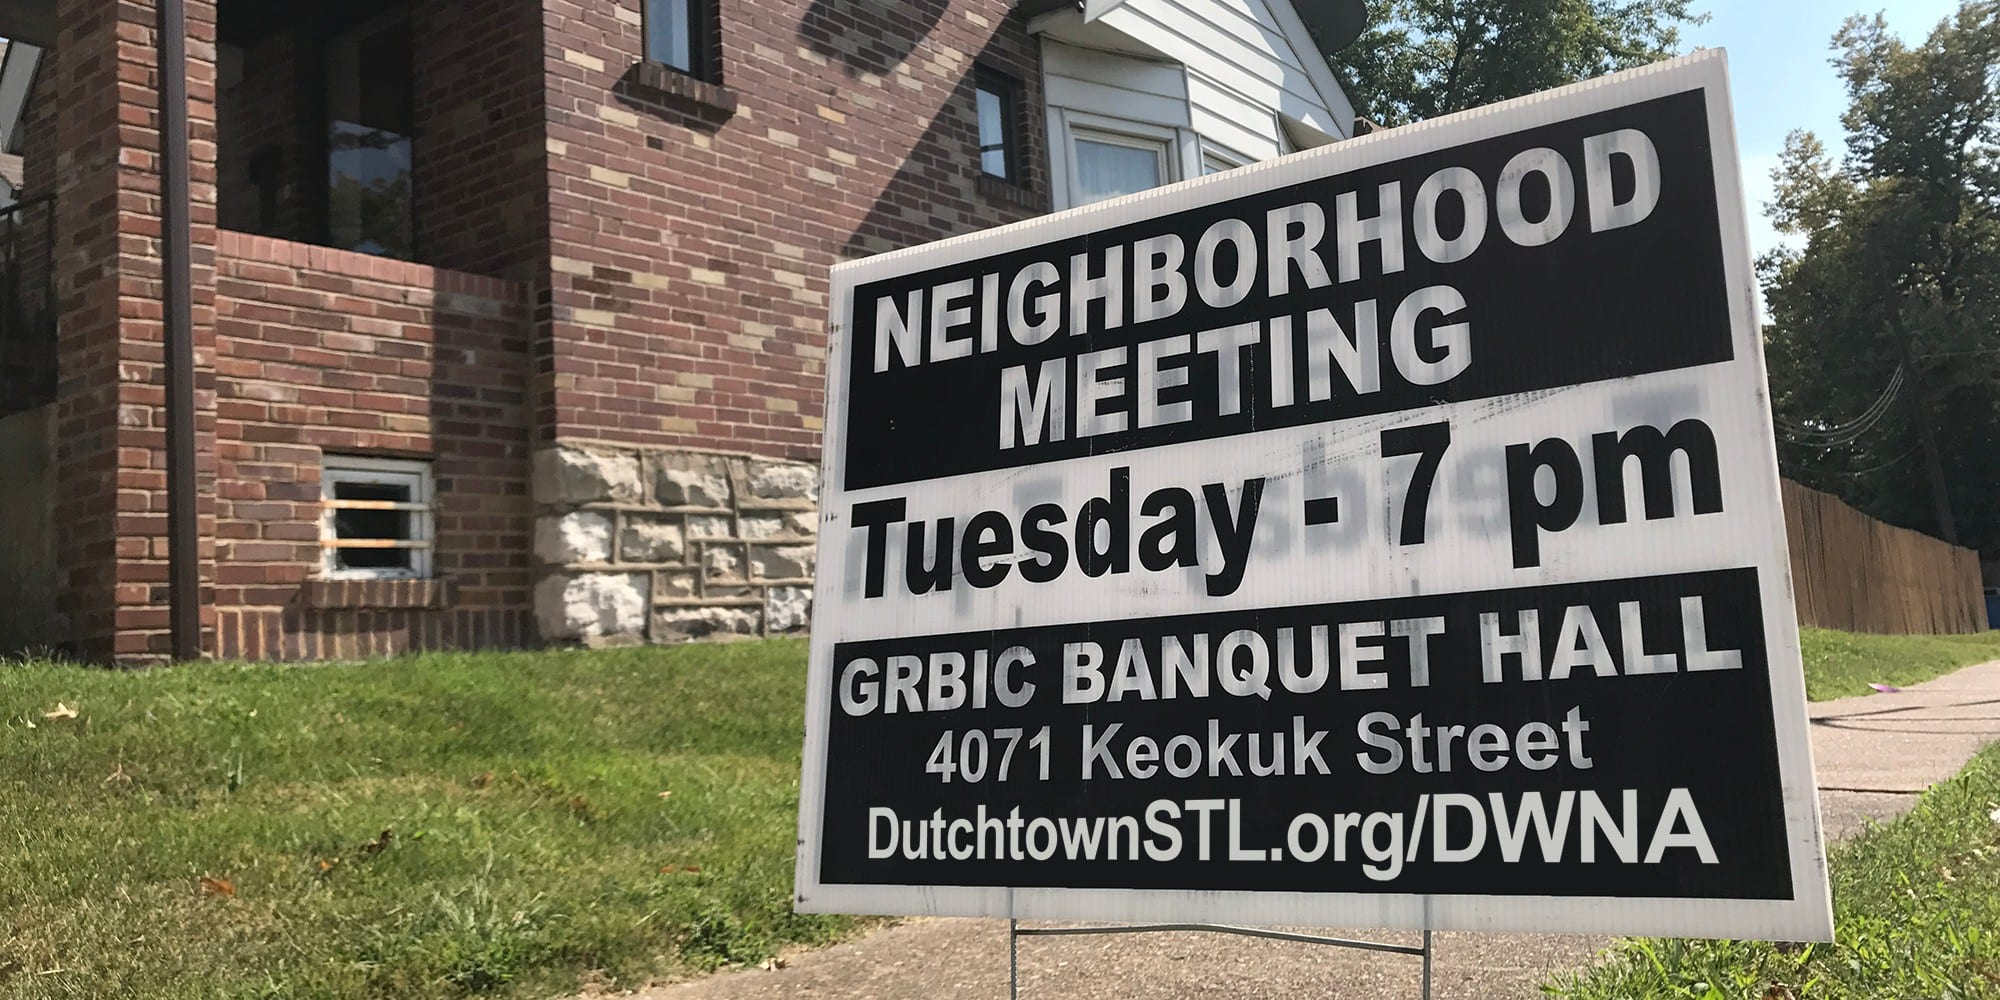 Dutchtown West neighborhood meeting sign.